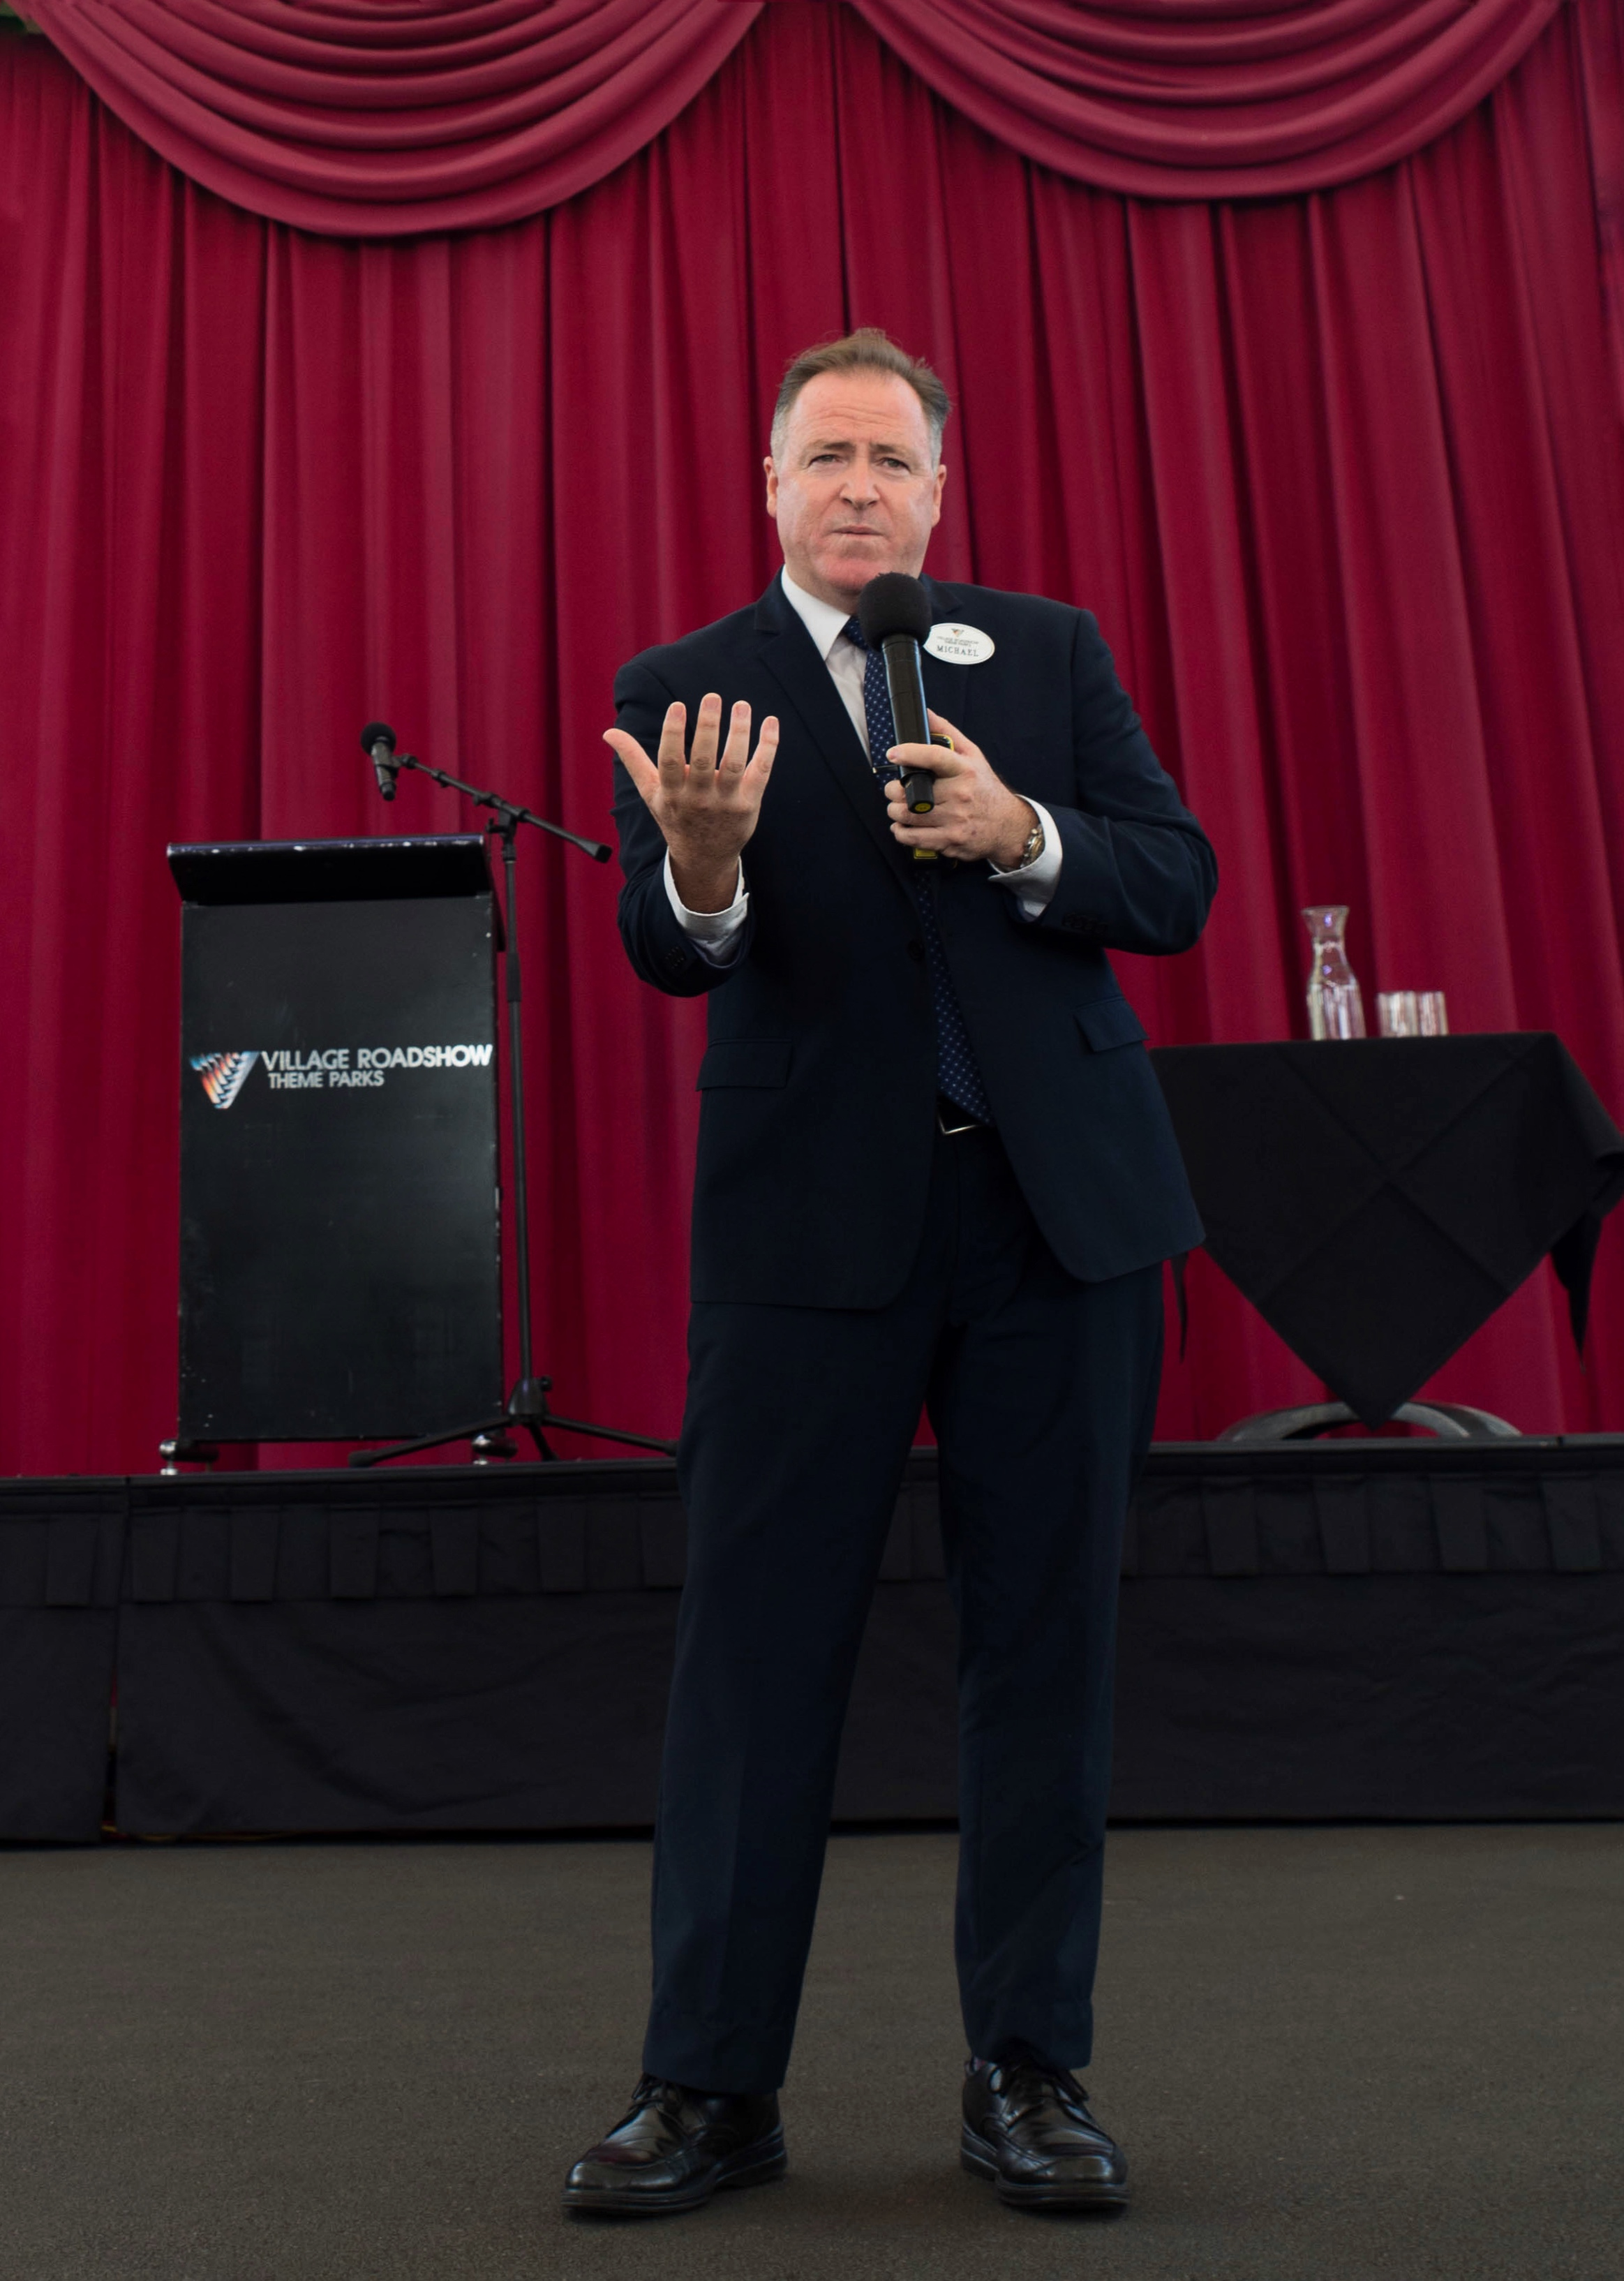 Michael guest speaking at the March WOMEN IN TOURISM Breakfast at Warner Bros. Movie World.